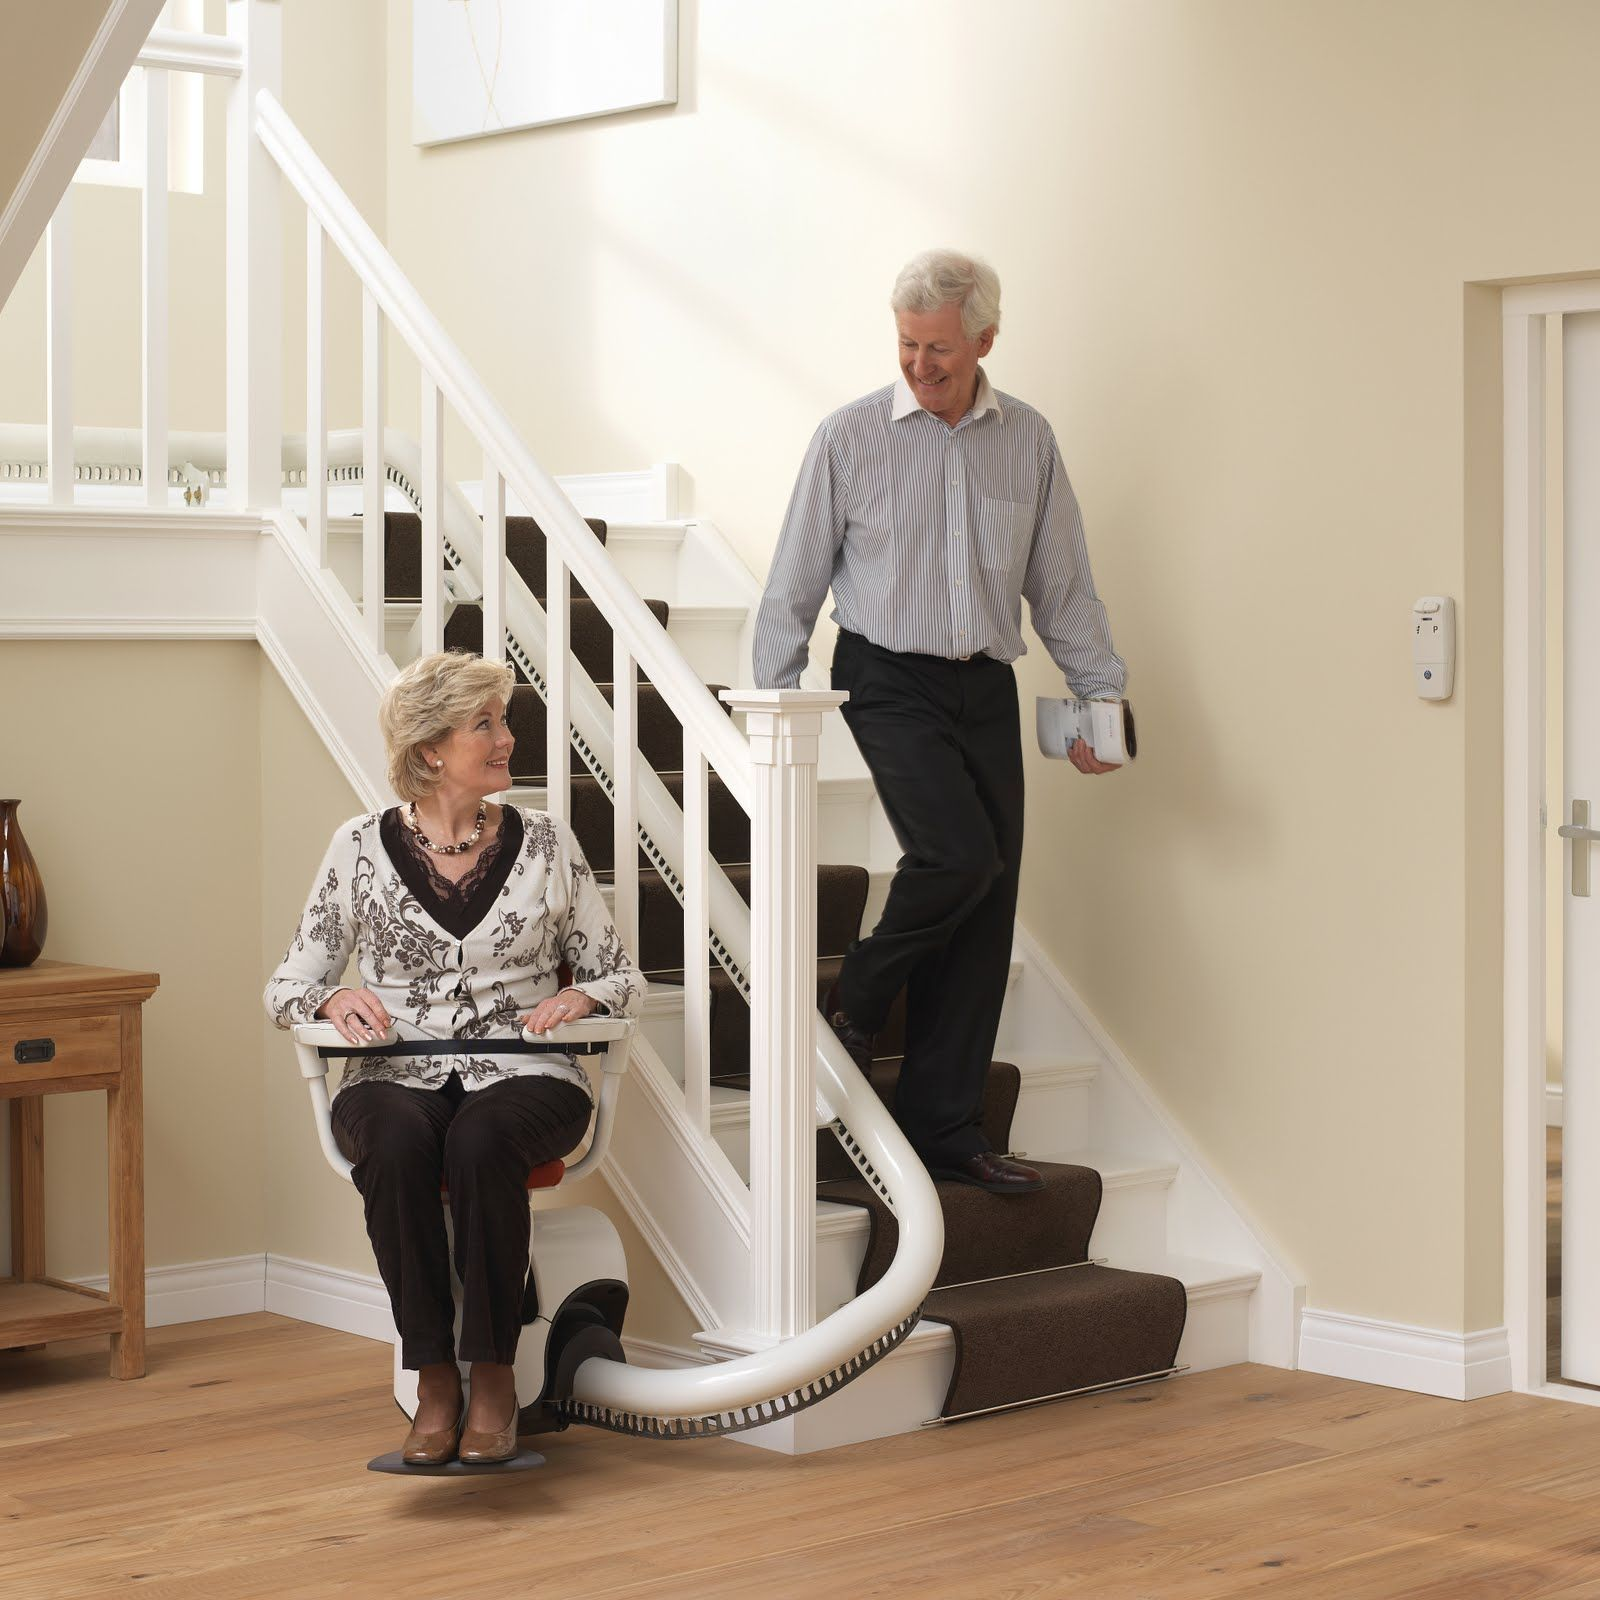 Pictures Of Stairs Bruno Stair Lift Parts Stair Lifts White Stairs W Runner Stair Lifts Stair Lift Stairs